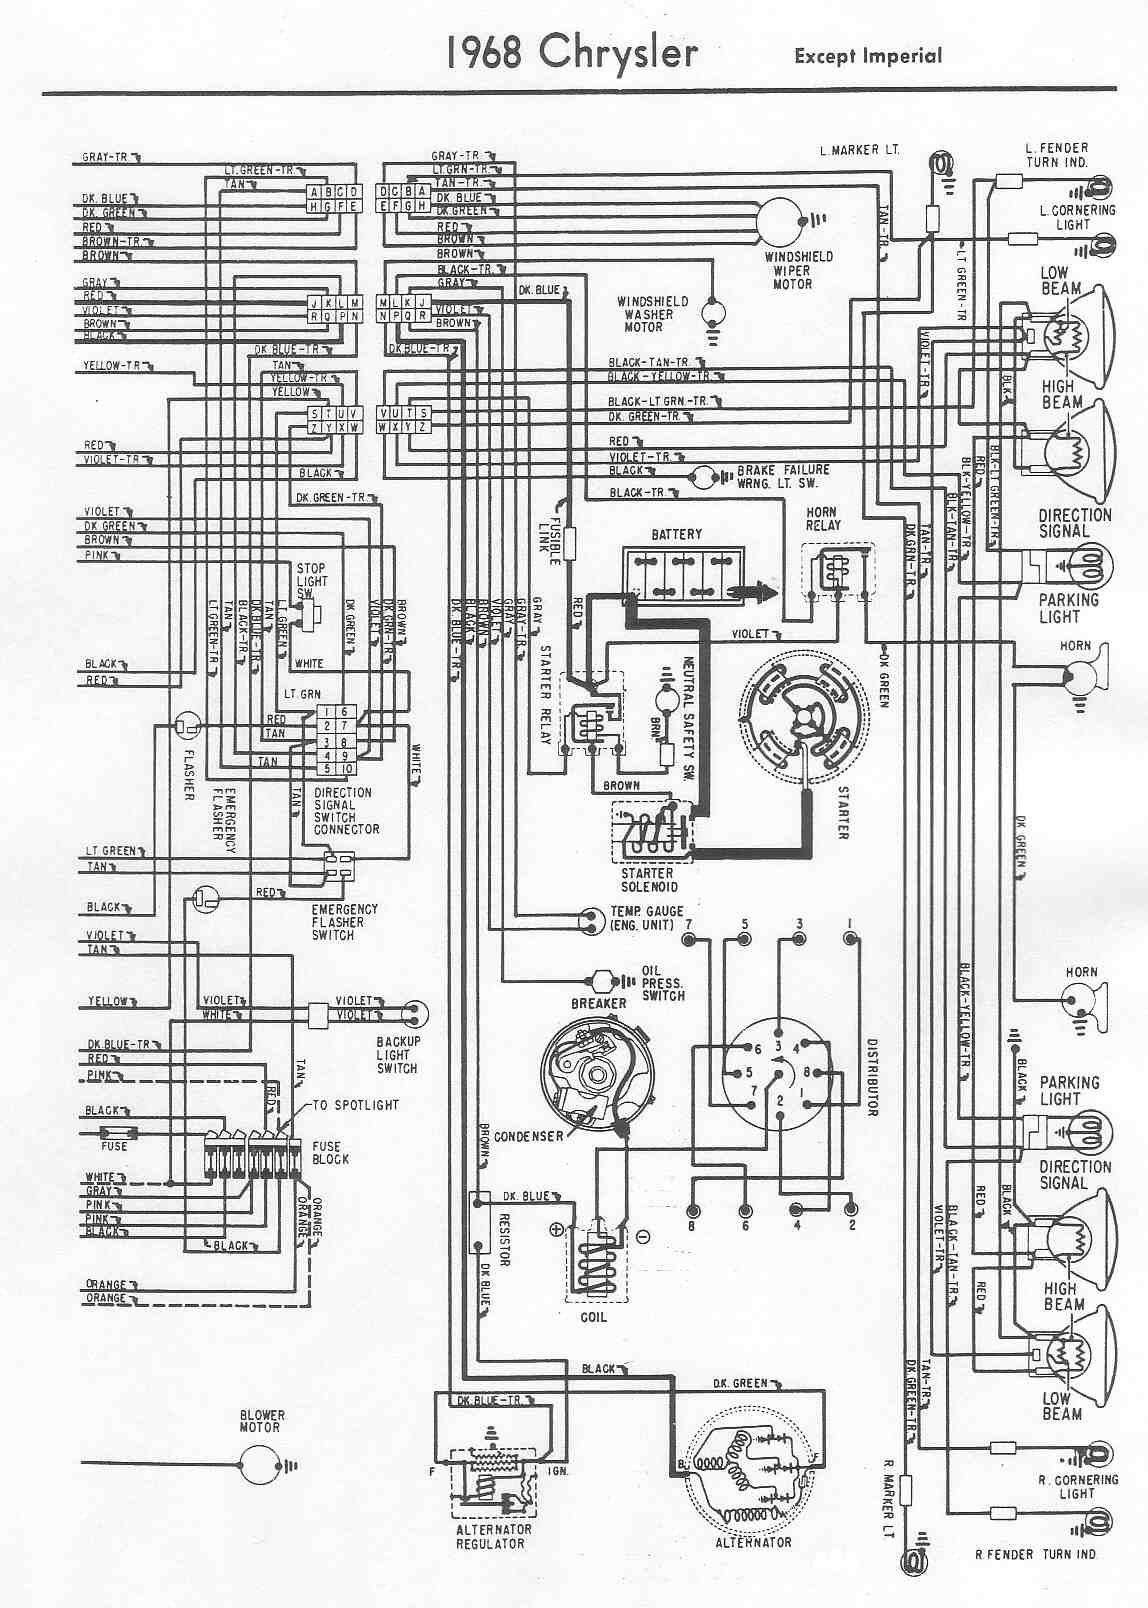 medium resolution of wiring diagram in addition 1972 chevy c10 wiring diagram on 68 68 chevelle wiring schematic 1966 gto wiring schematic